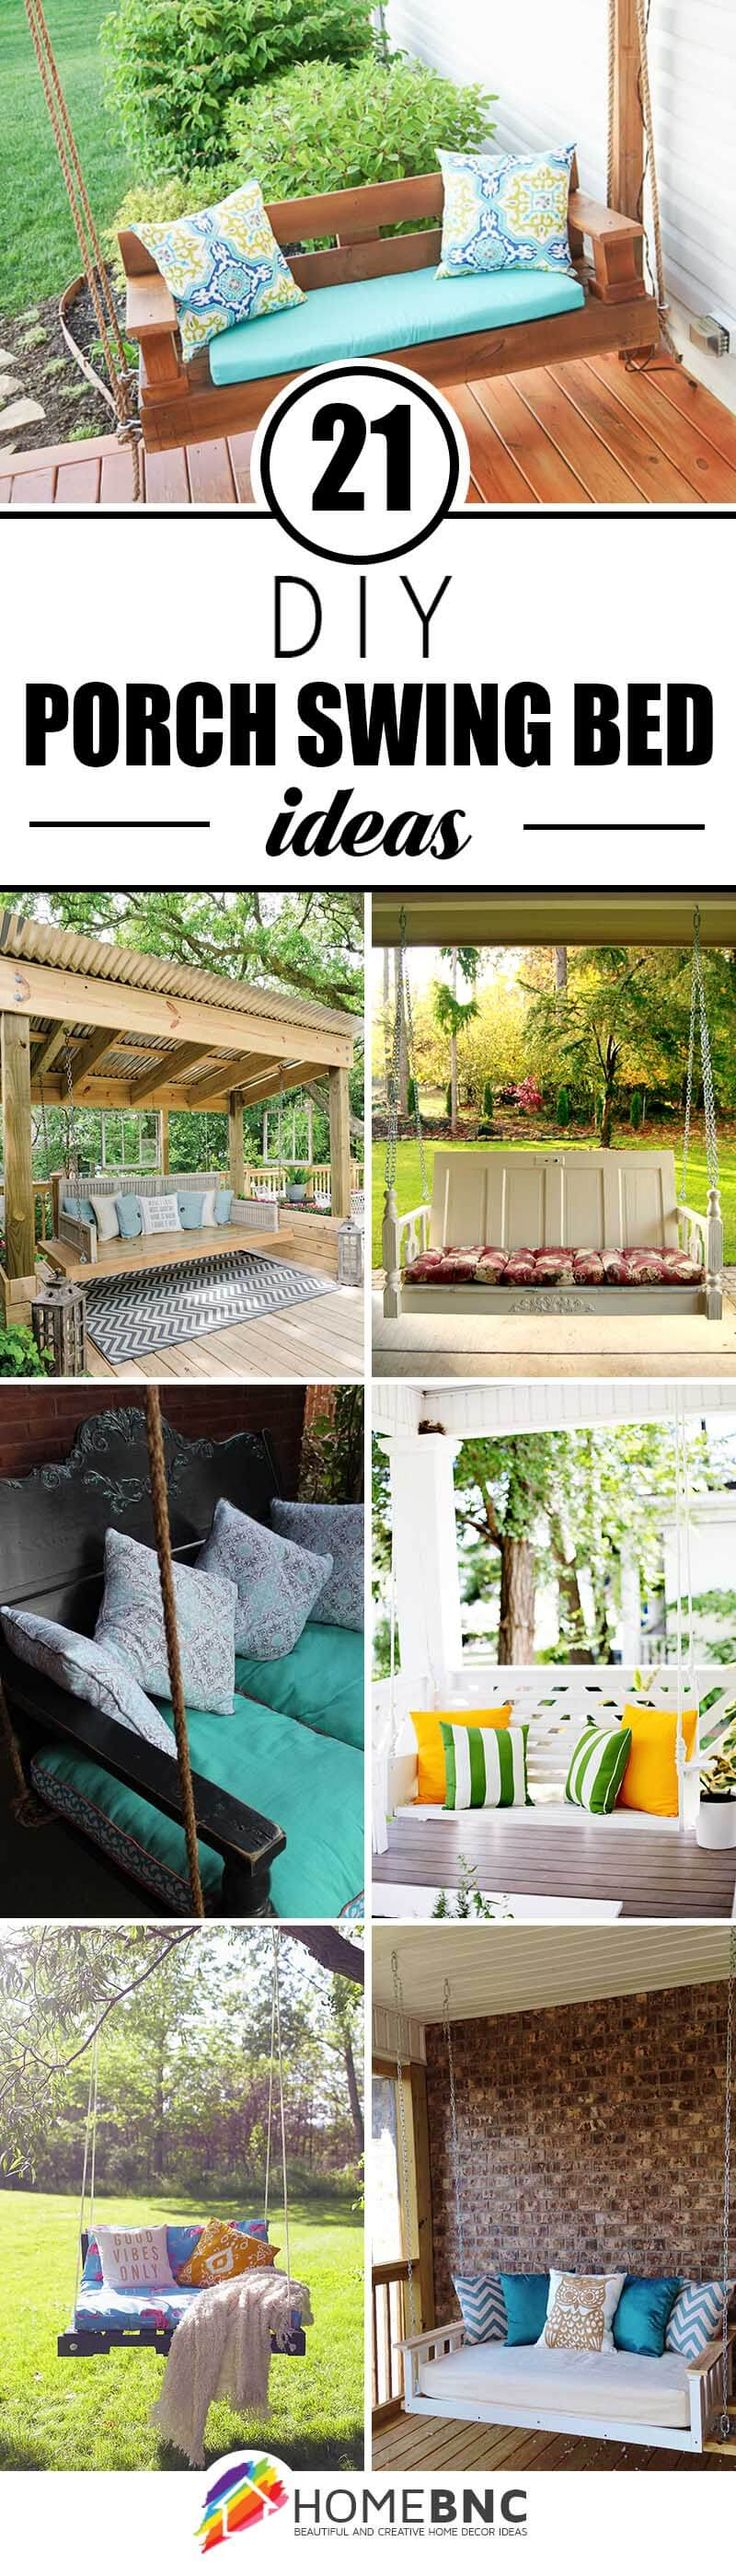 DIY Porch Swing Bed Decoration Ideas.-BY HOMEBNC ....there's no better way to take in the sun than on a bespoke porch swing. Porch swings have played a cherished part in idyllic Americana, and now more than ever even the stylishly discerning are making room for these classic pieces.